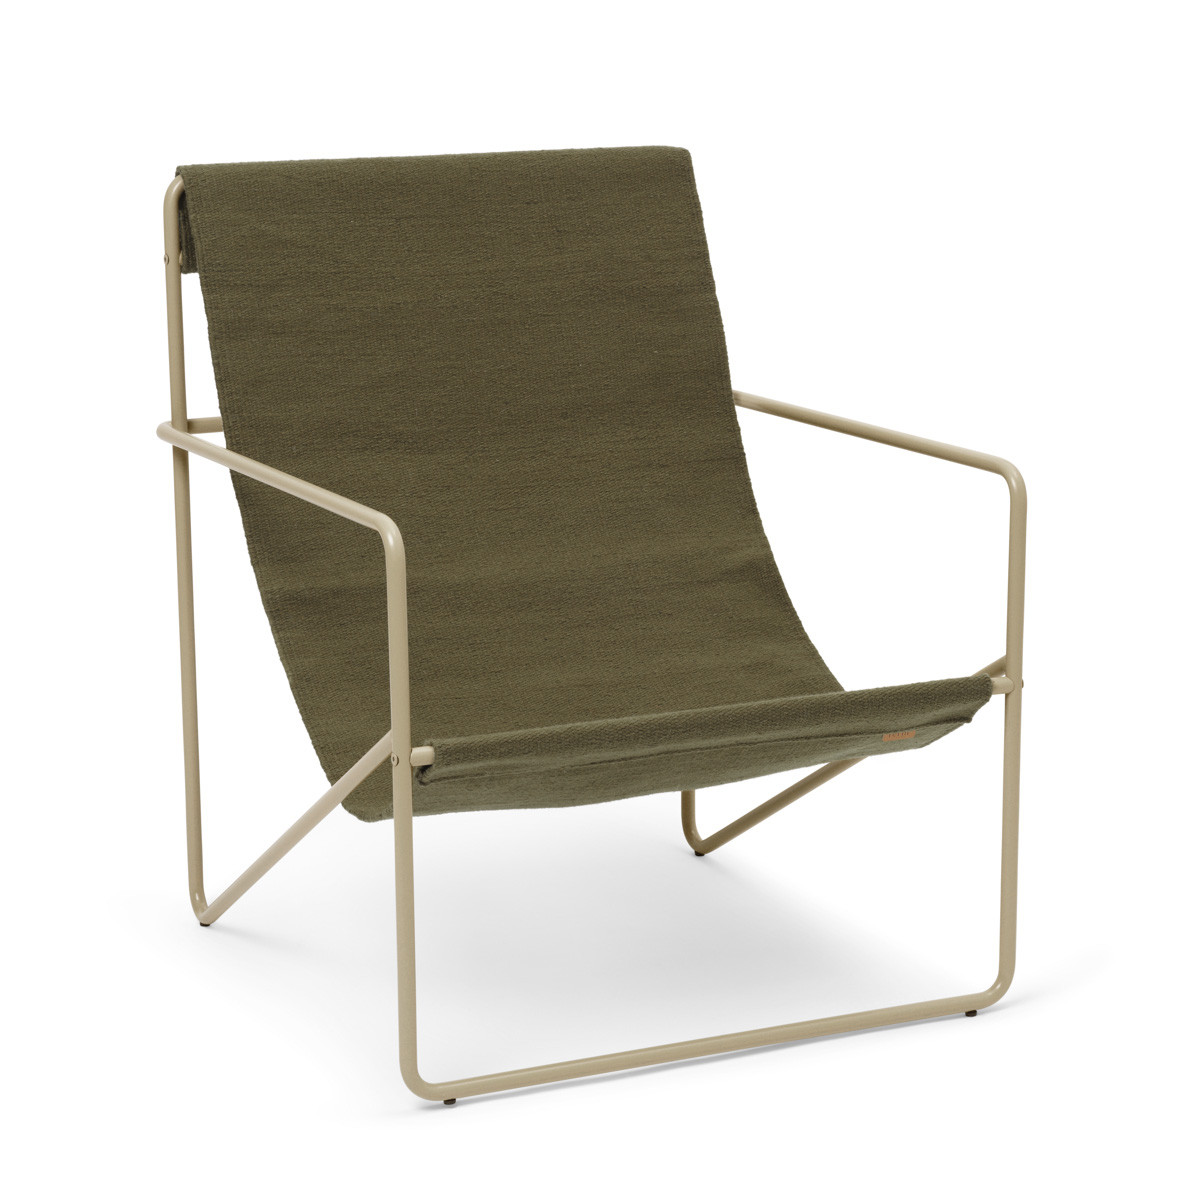 Ferm Living Desert Lounge Chair - Olive